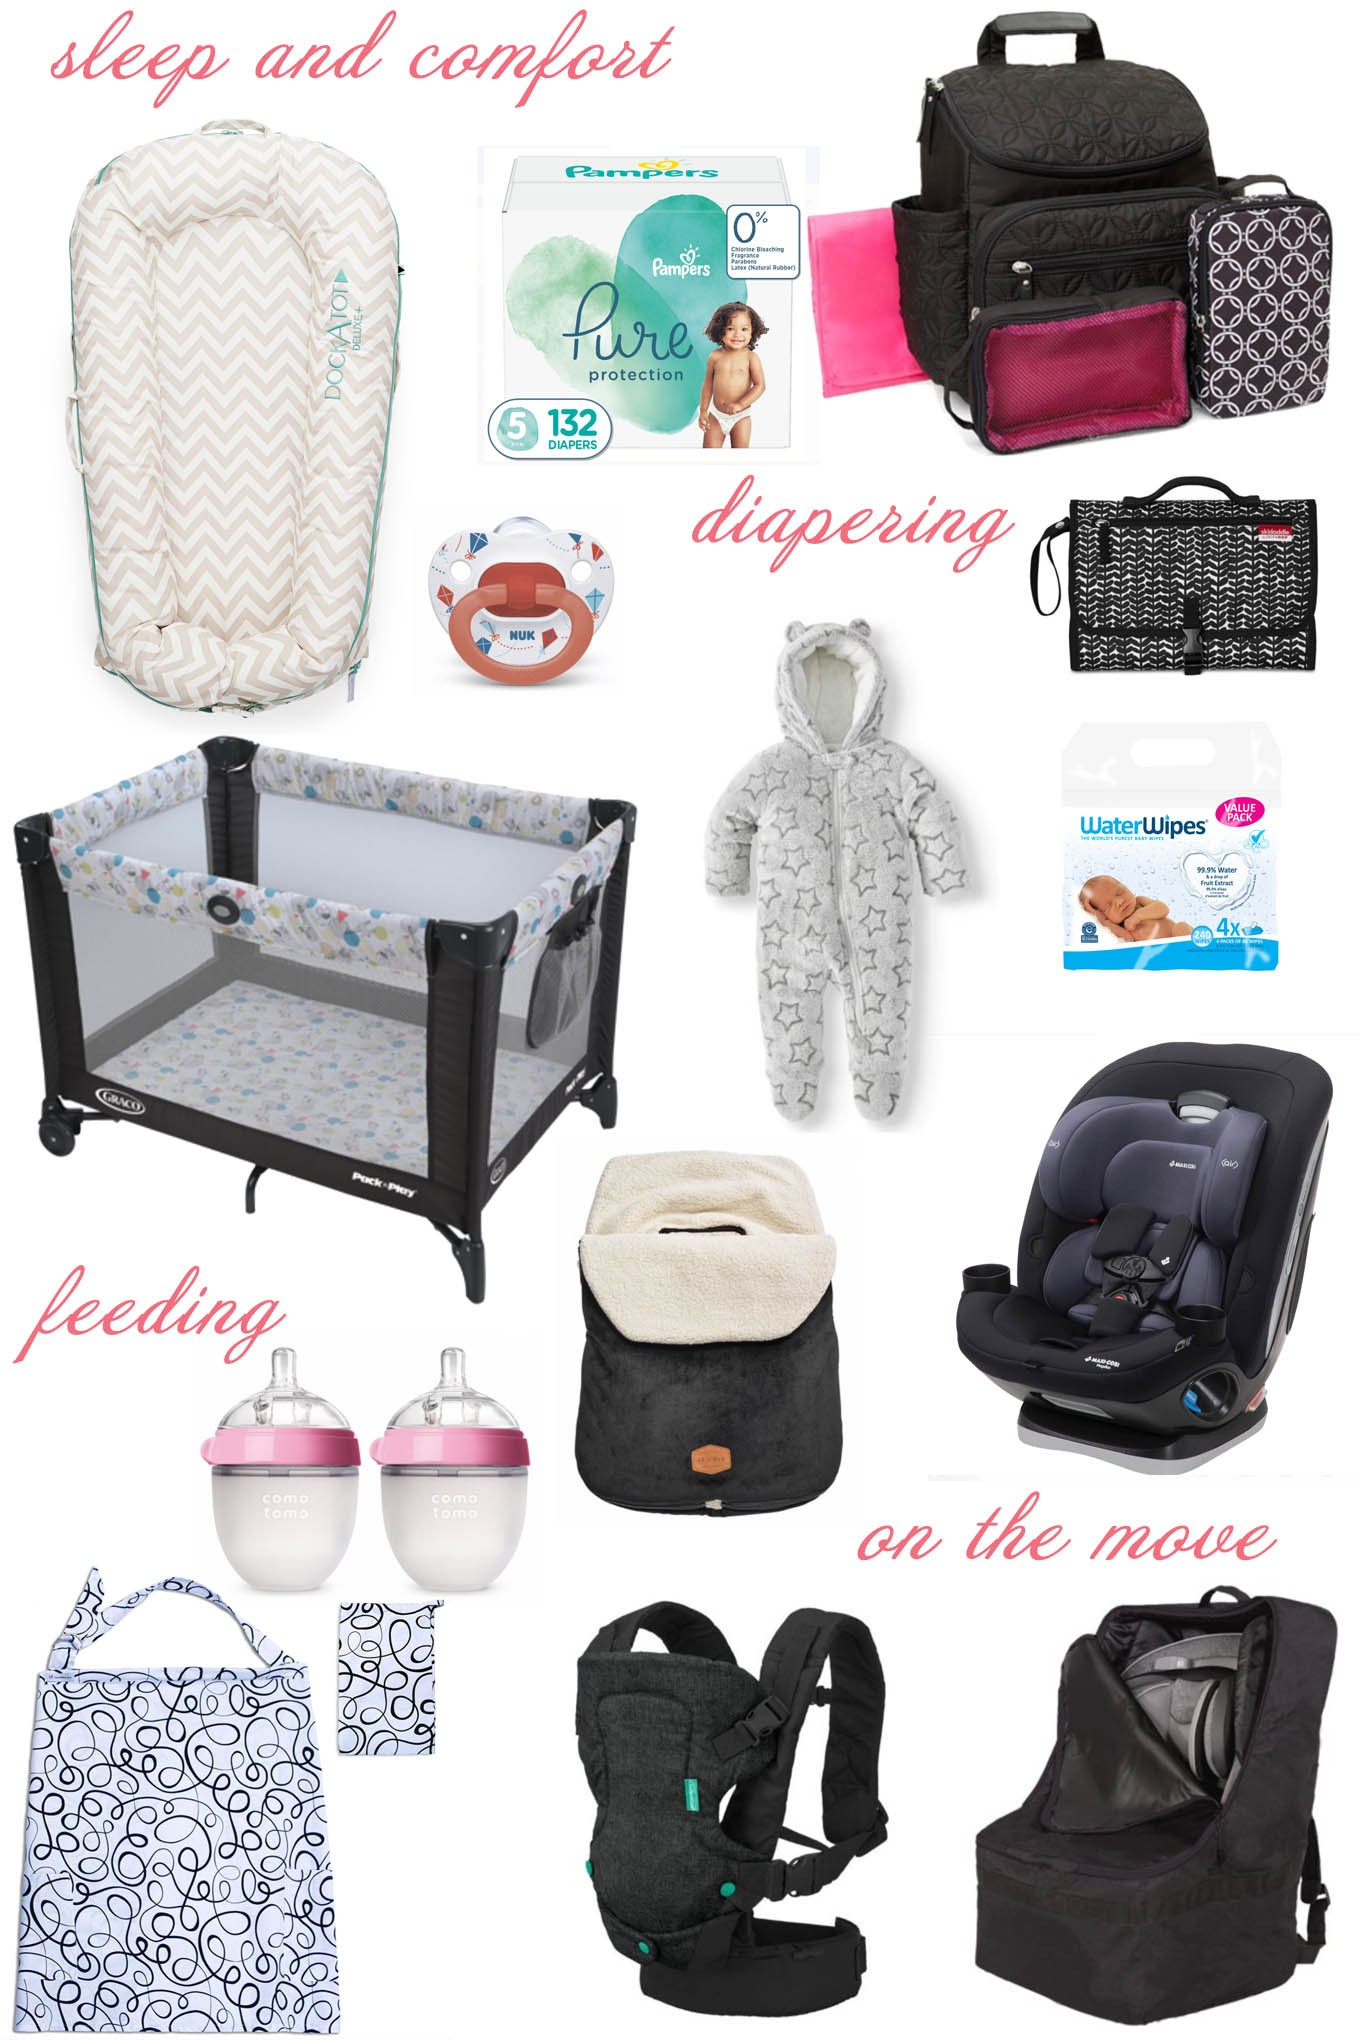 Essential Winter Packing List for Baby by popular Chicago lifestyle blog, Glass of Glam: collage image of a dock-a-tot, Pampers Pure diapers, diaper bag, pac n' play, baby wipes, bottles, baby carrier, car seat, and pacifier. .